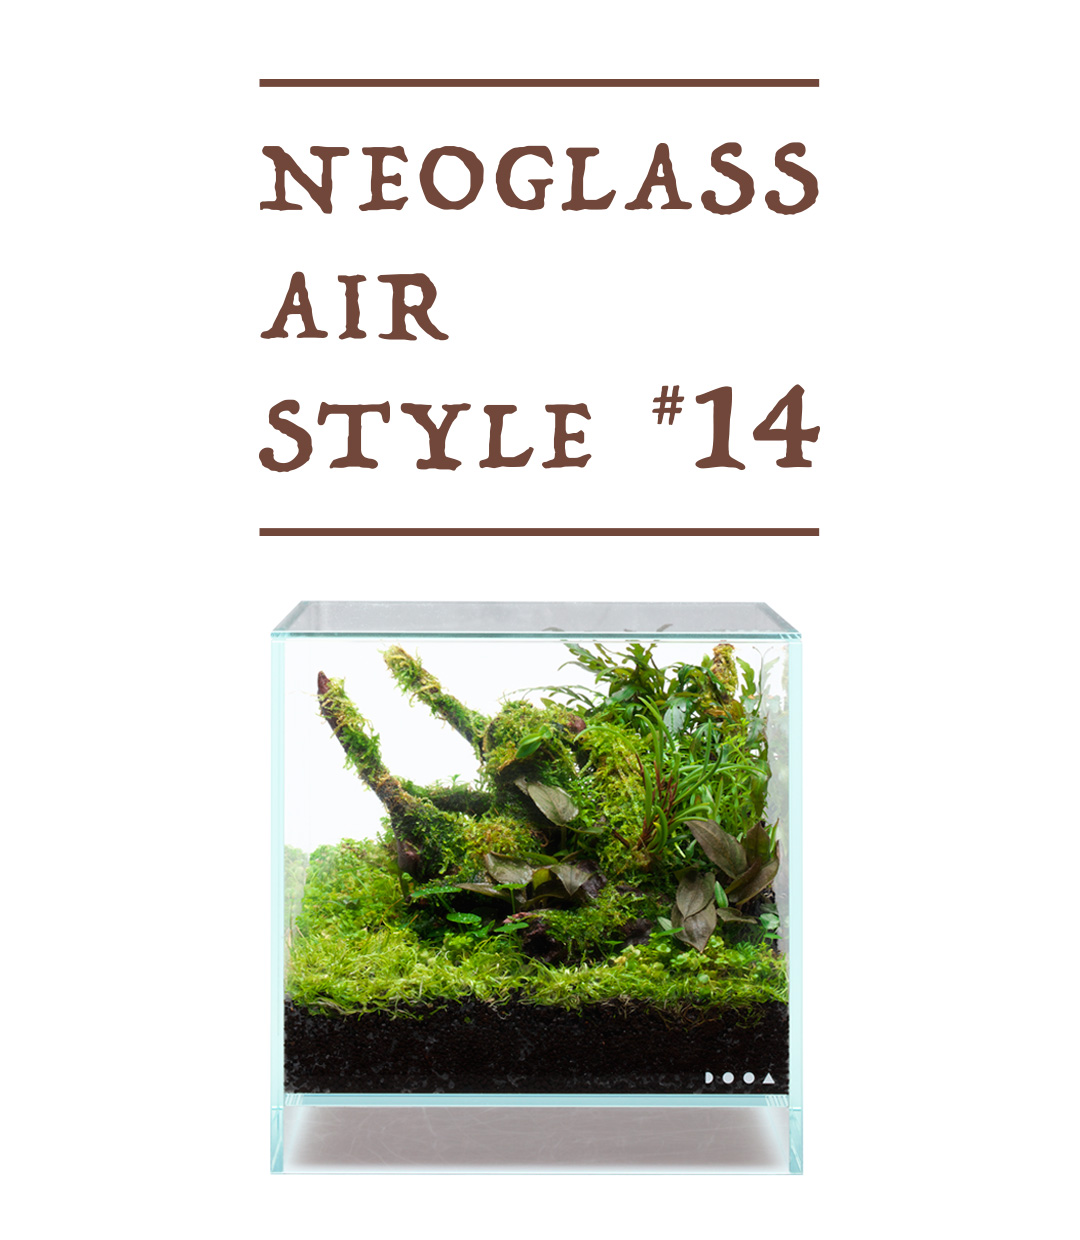 NEOGLASS AIR STYLE 'Composition image in an aquarium tank'